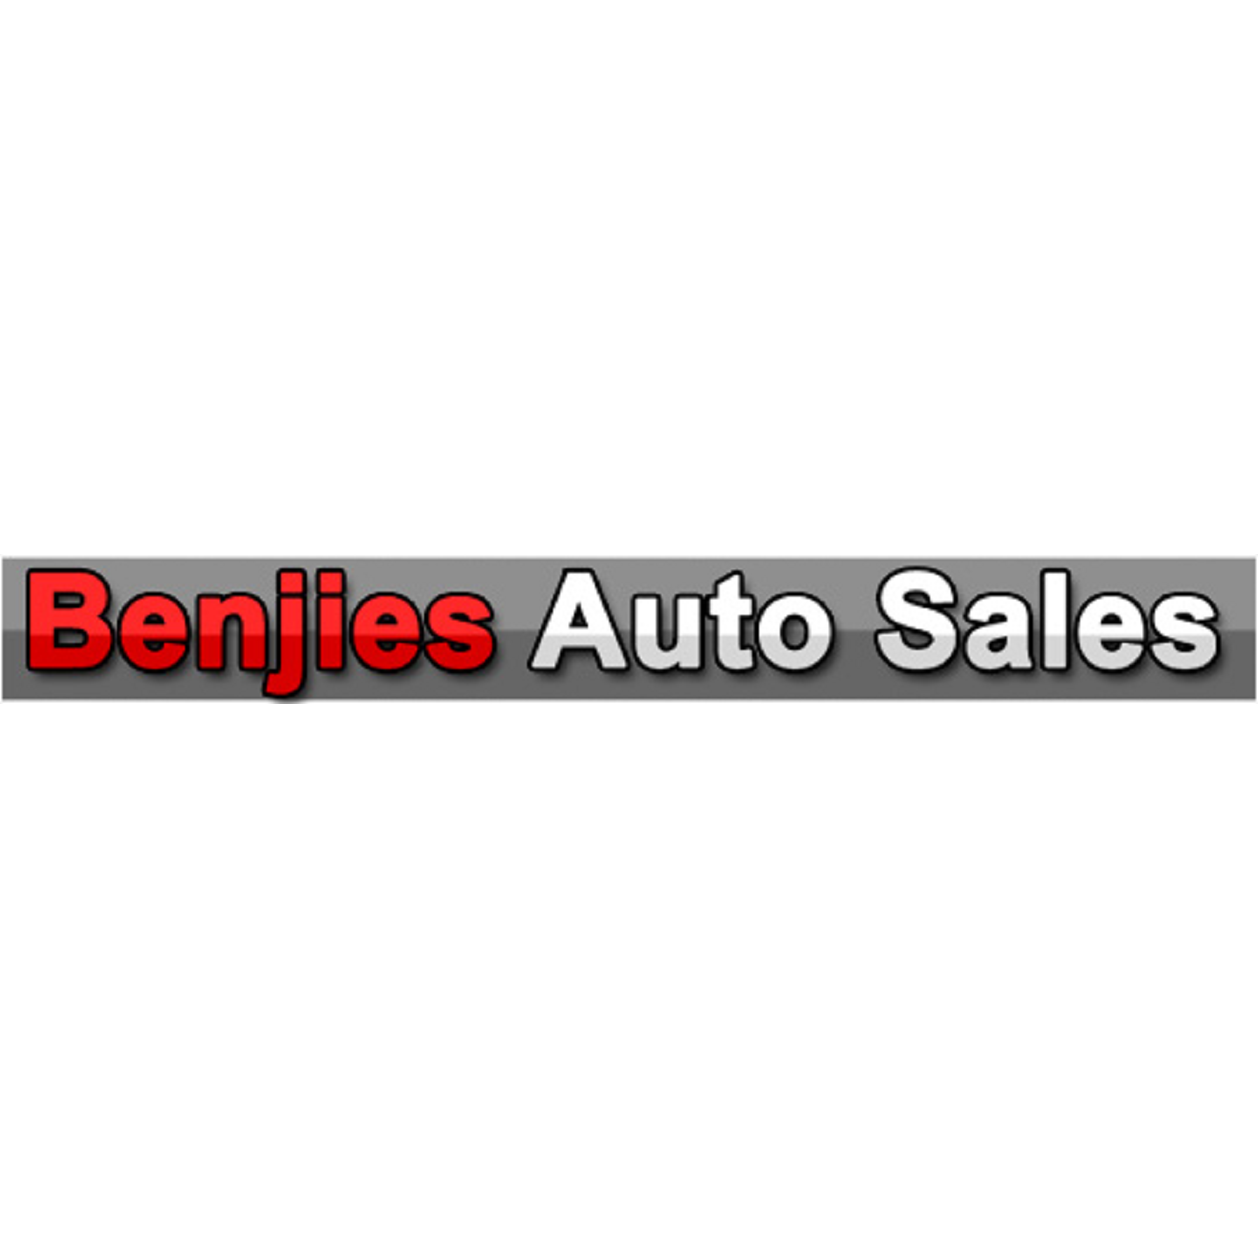 Benjie's Auto Sales - Leavenworth, KS - Auto Dealers